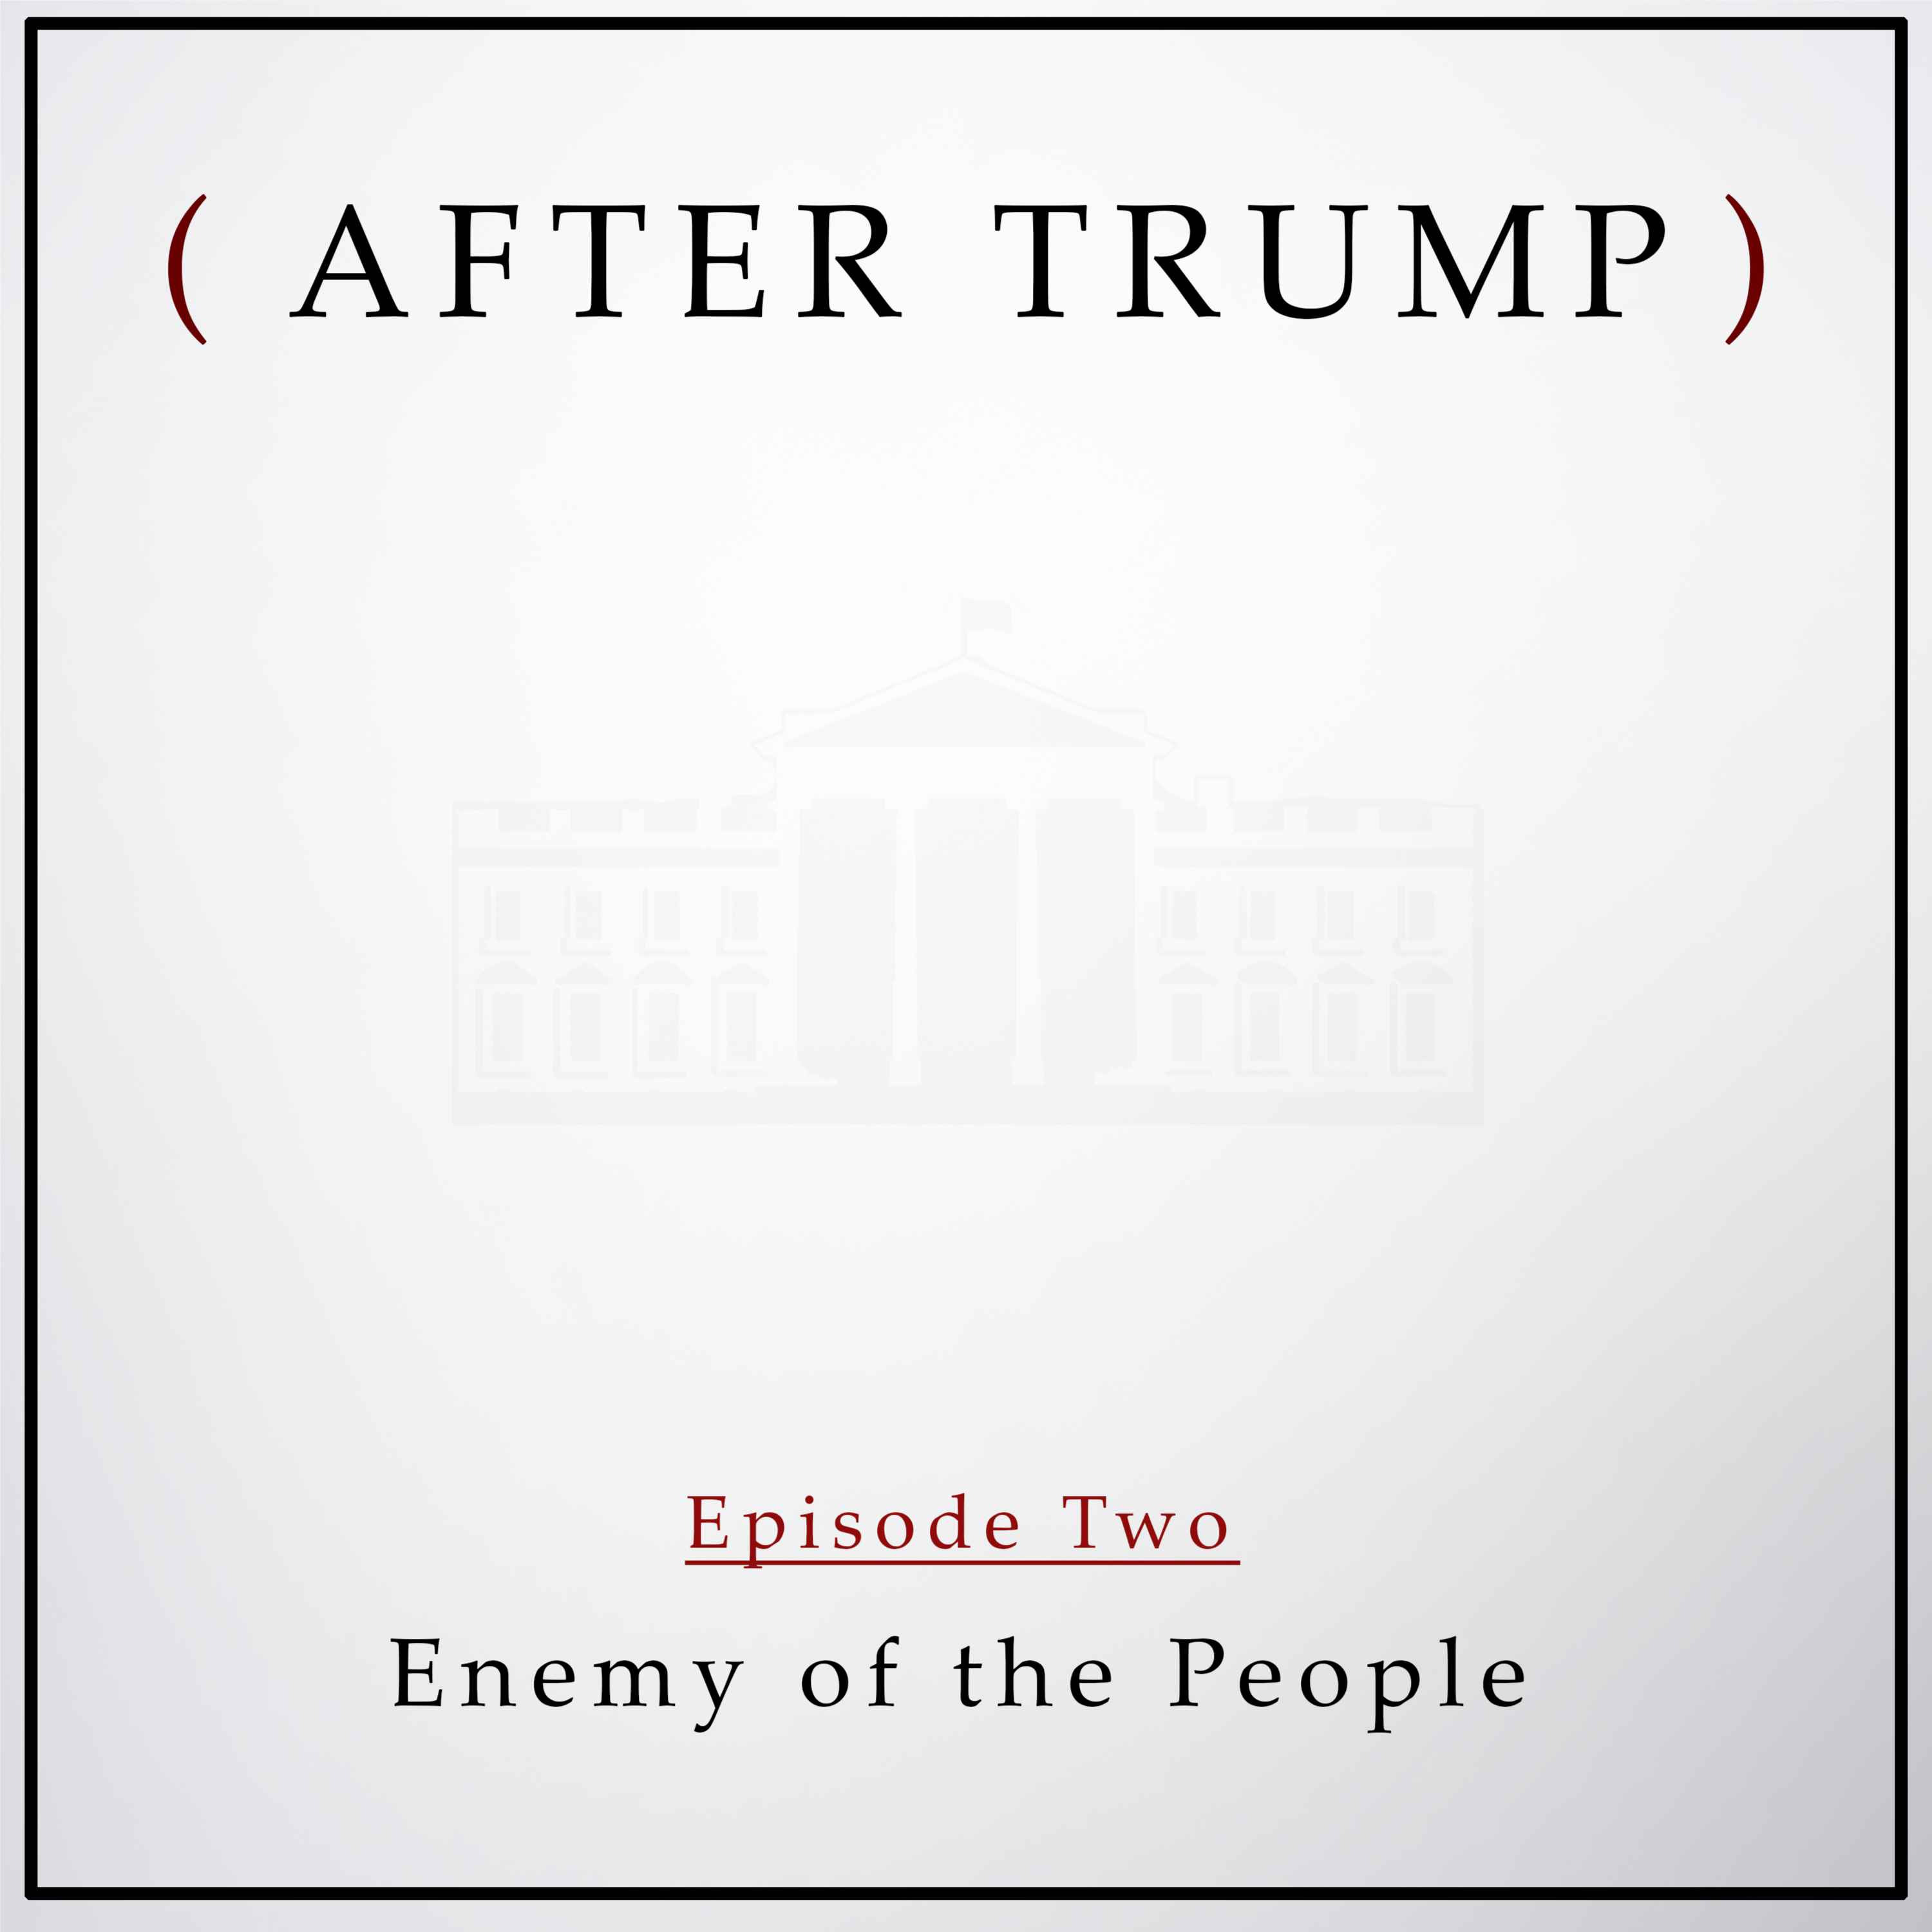 Episode 2: Enemy of the People